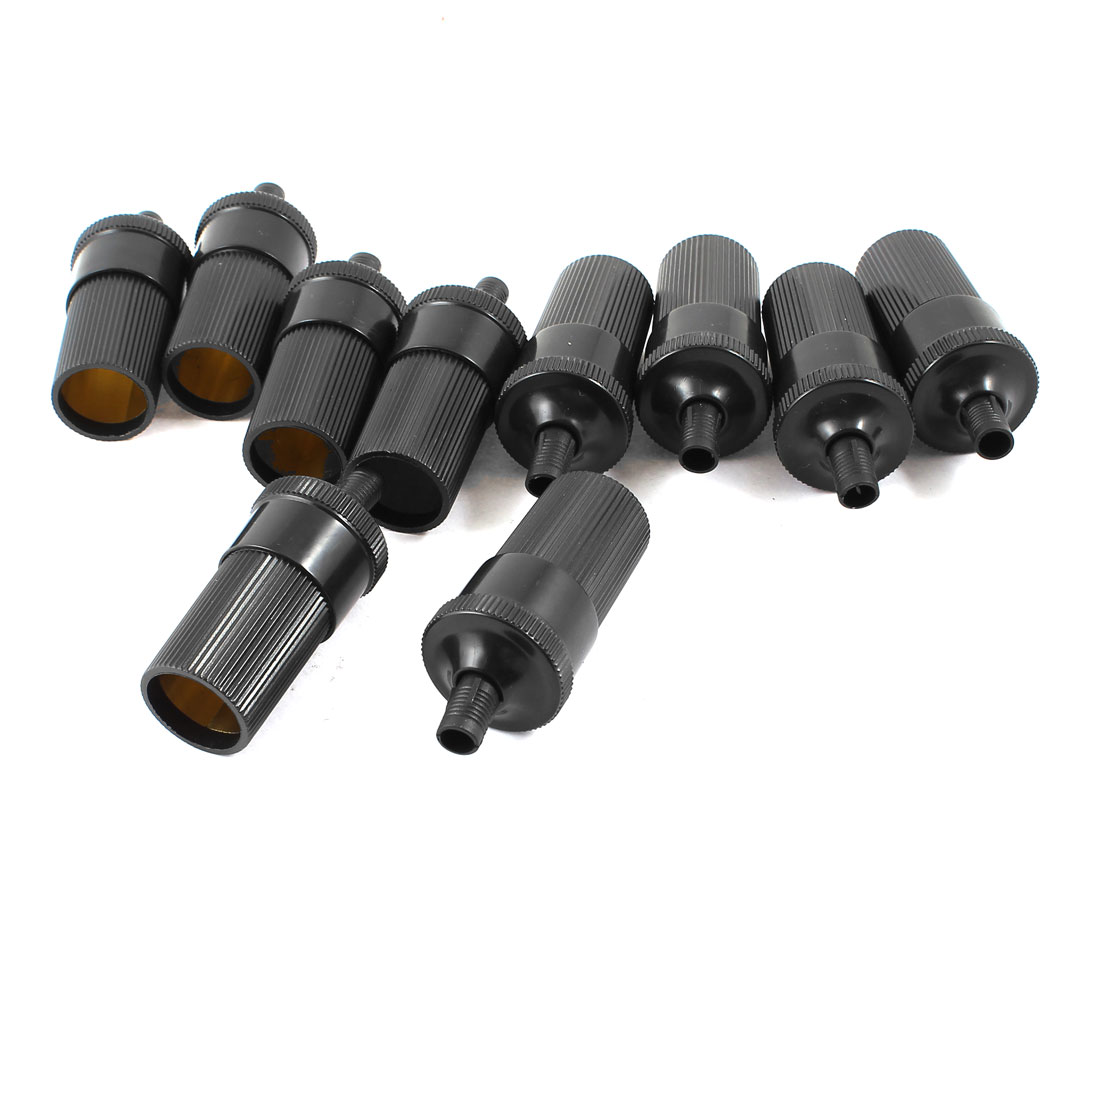 10 Pcs Plastic Housing Inline Car Cigarette Lighter Female Socket Black